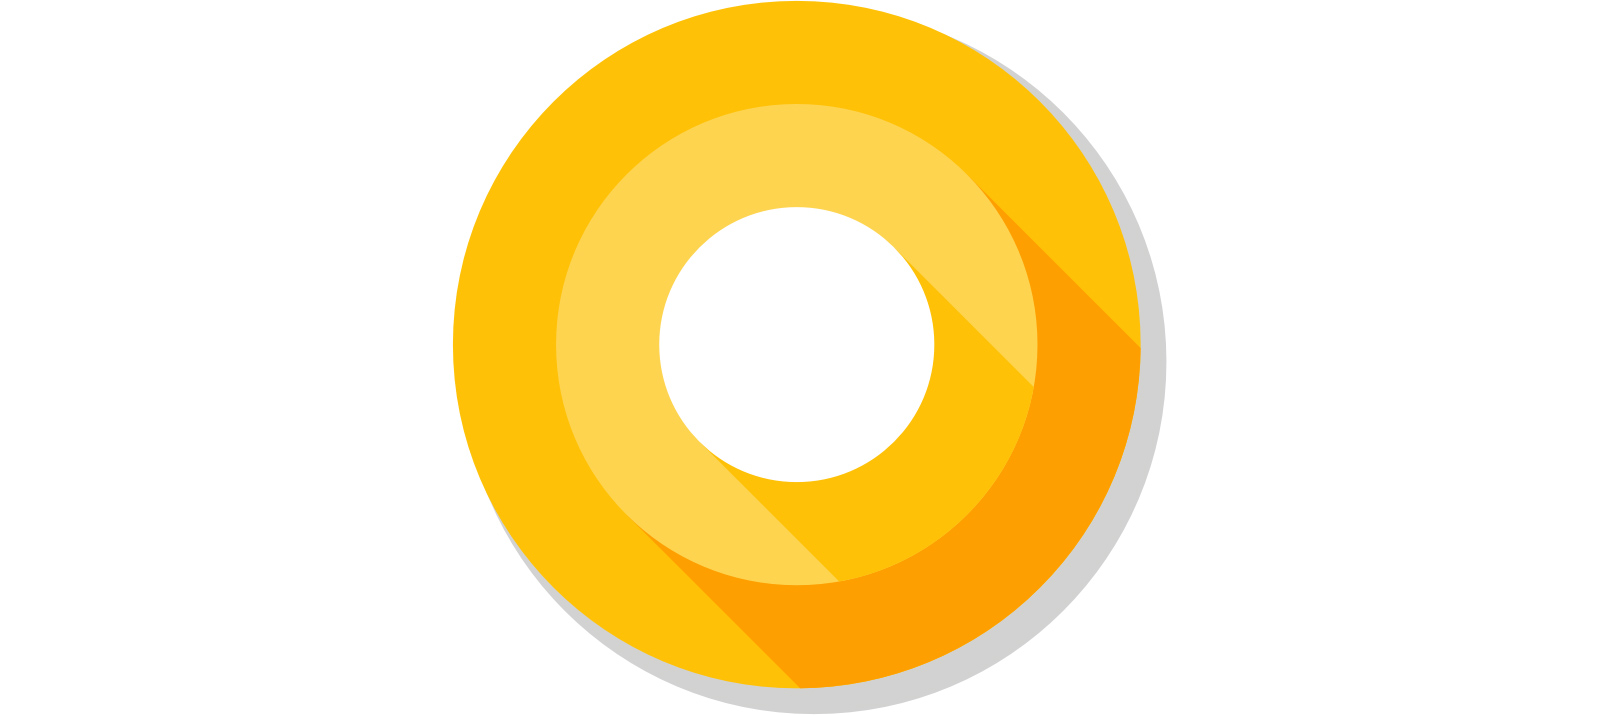 Download and Install Android 8 Oreo Launcher for any Android Device (Android O)